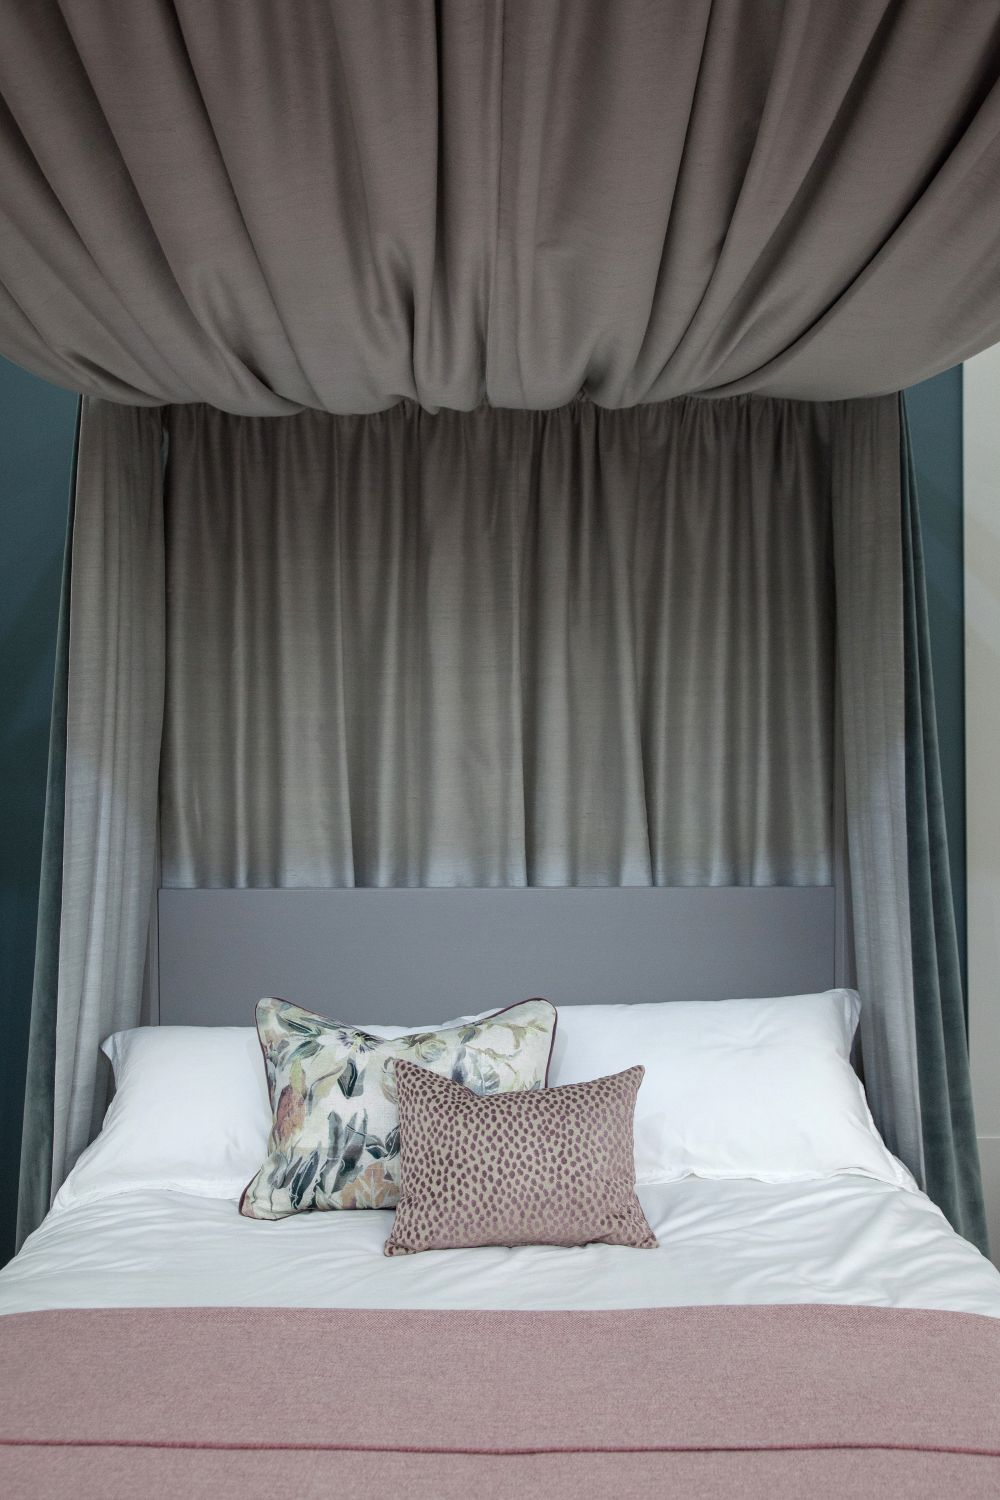 In The Bedroom Or The Couch: Use Feng Shui Earth Tones To Create Warm Approachability